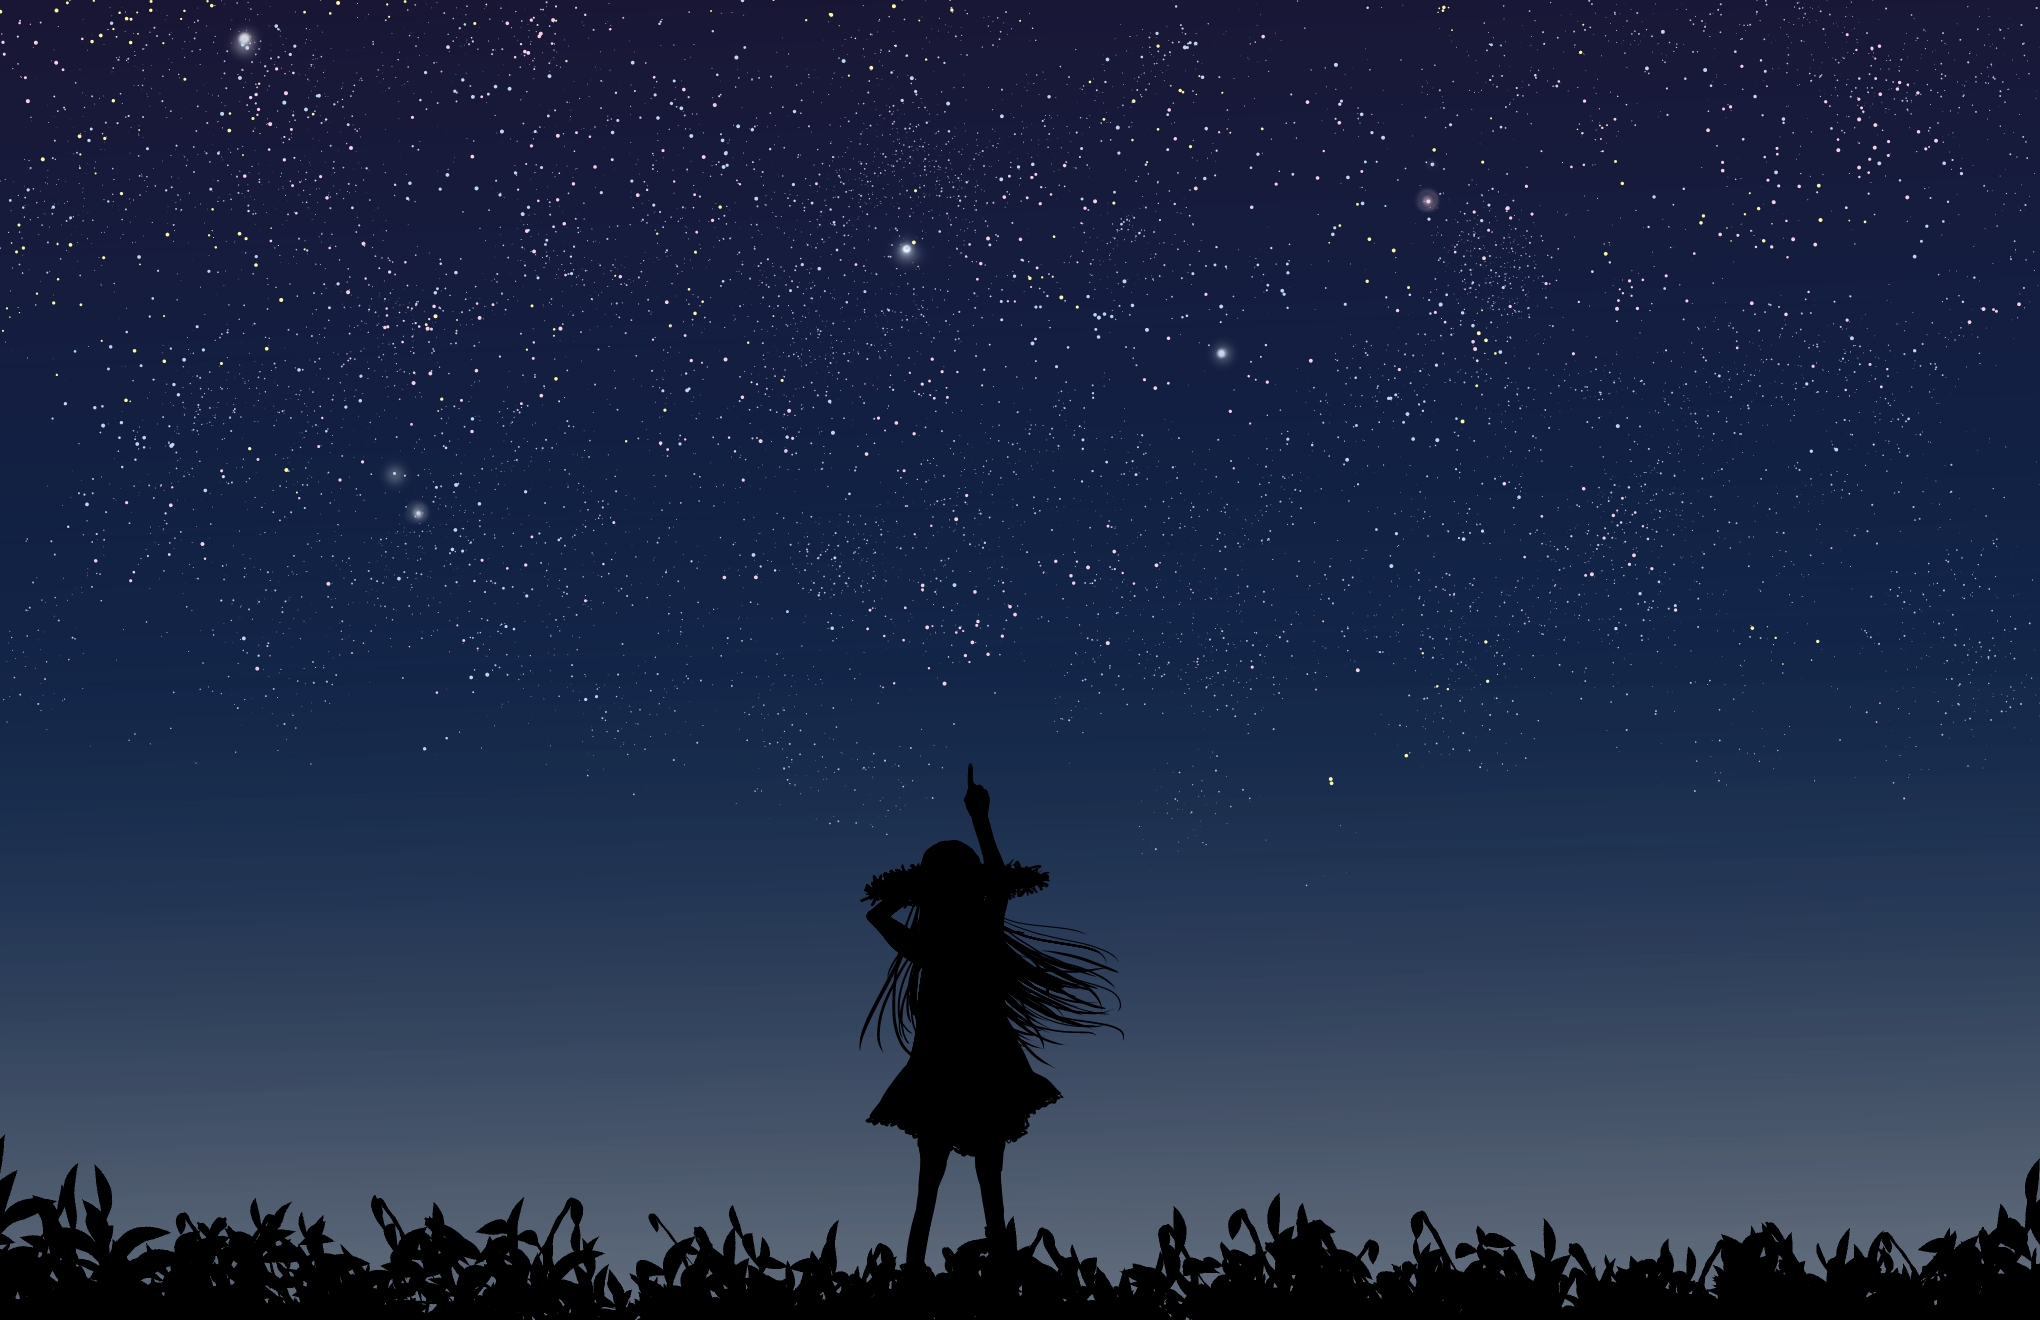 Pointing to stars